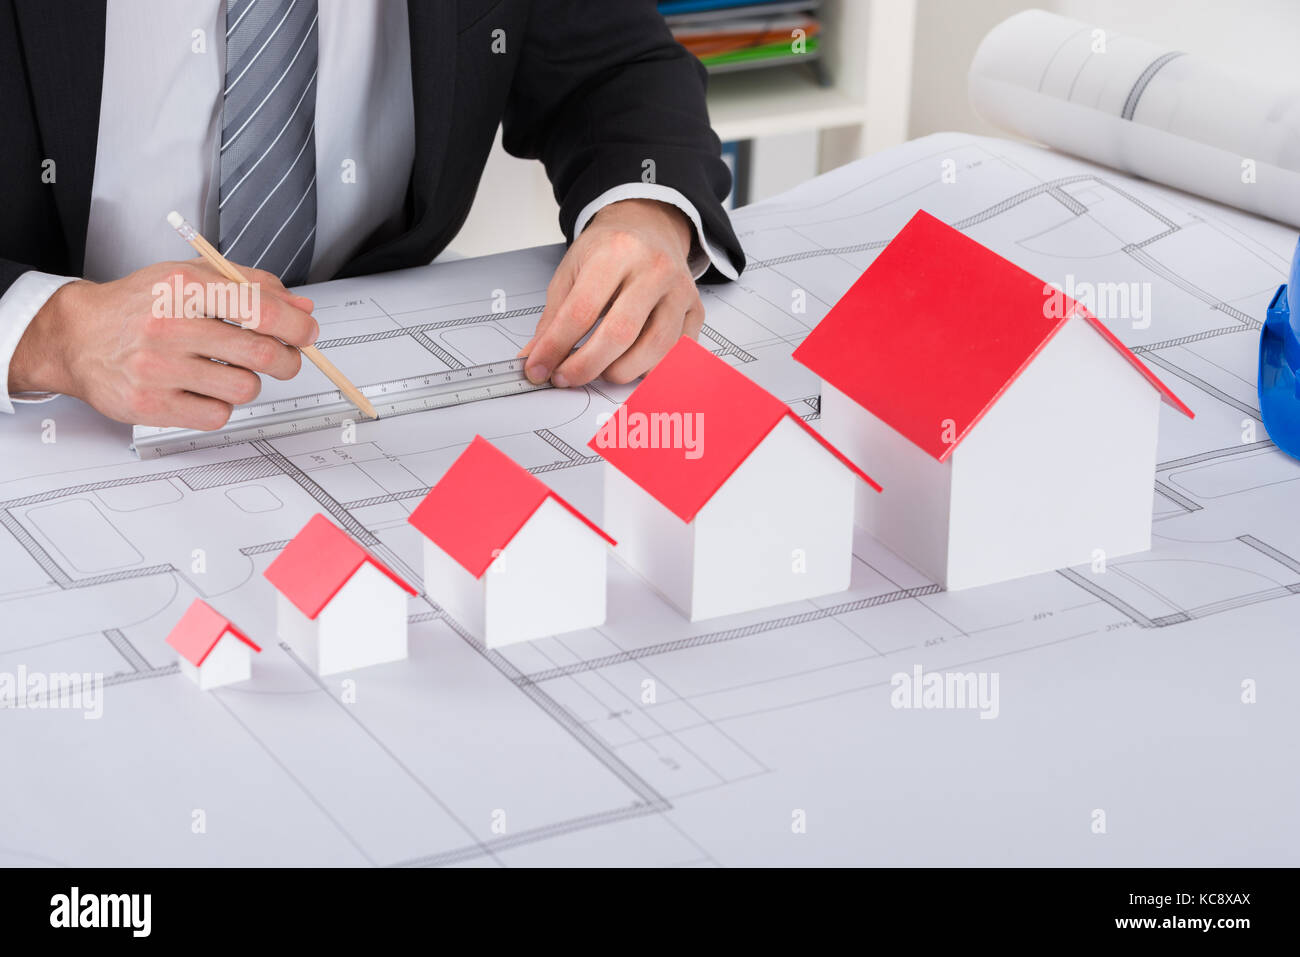 Close-up Of Male Architect Hand With House Models Working On Blueprint In Office - Stock Image